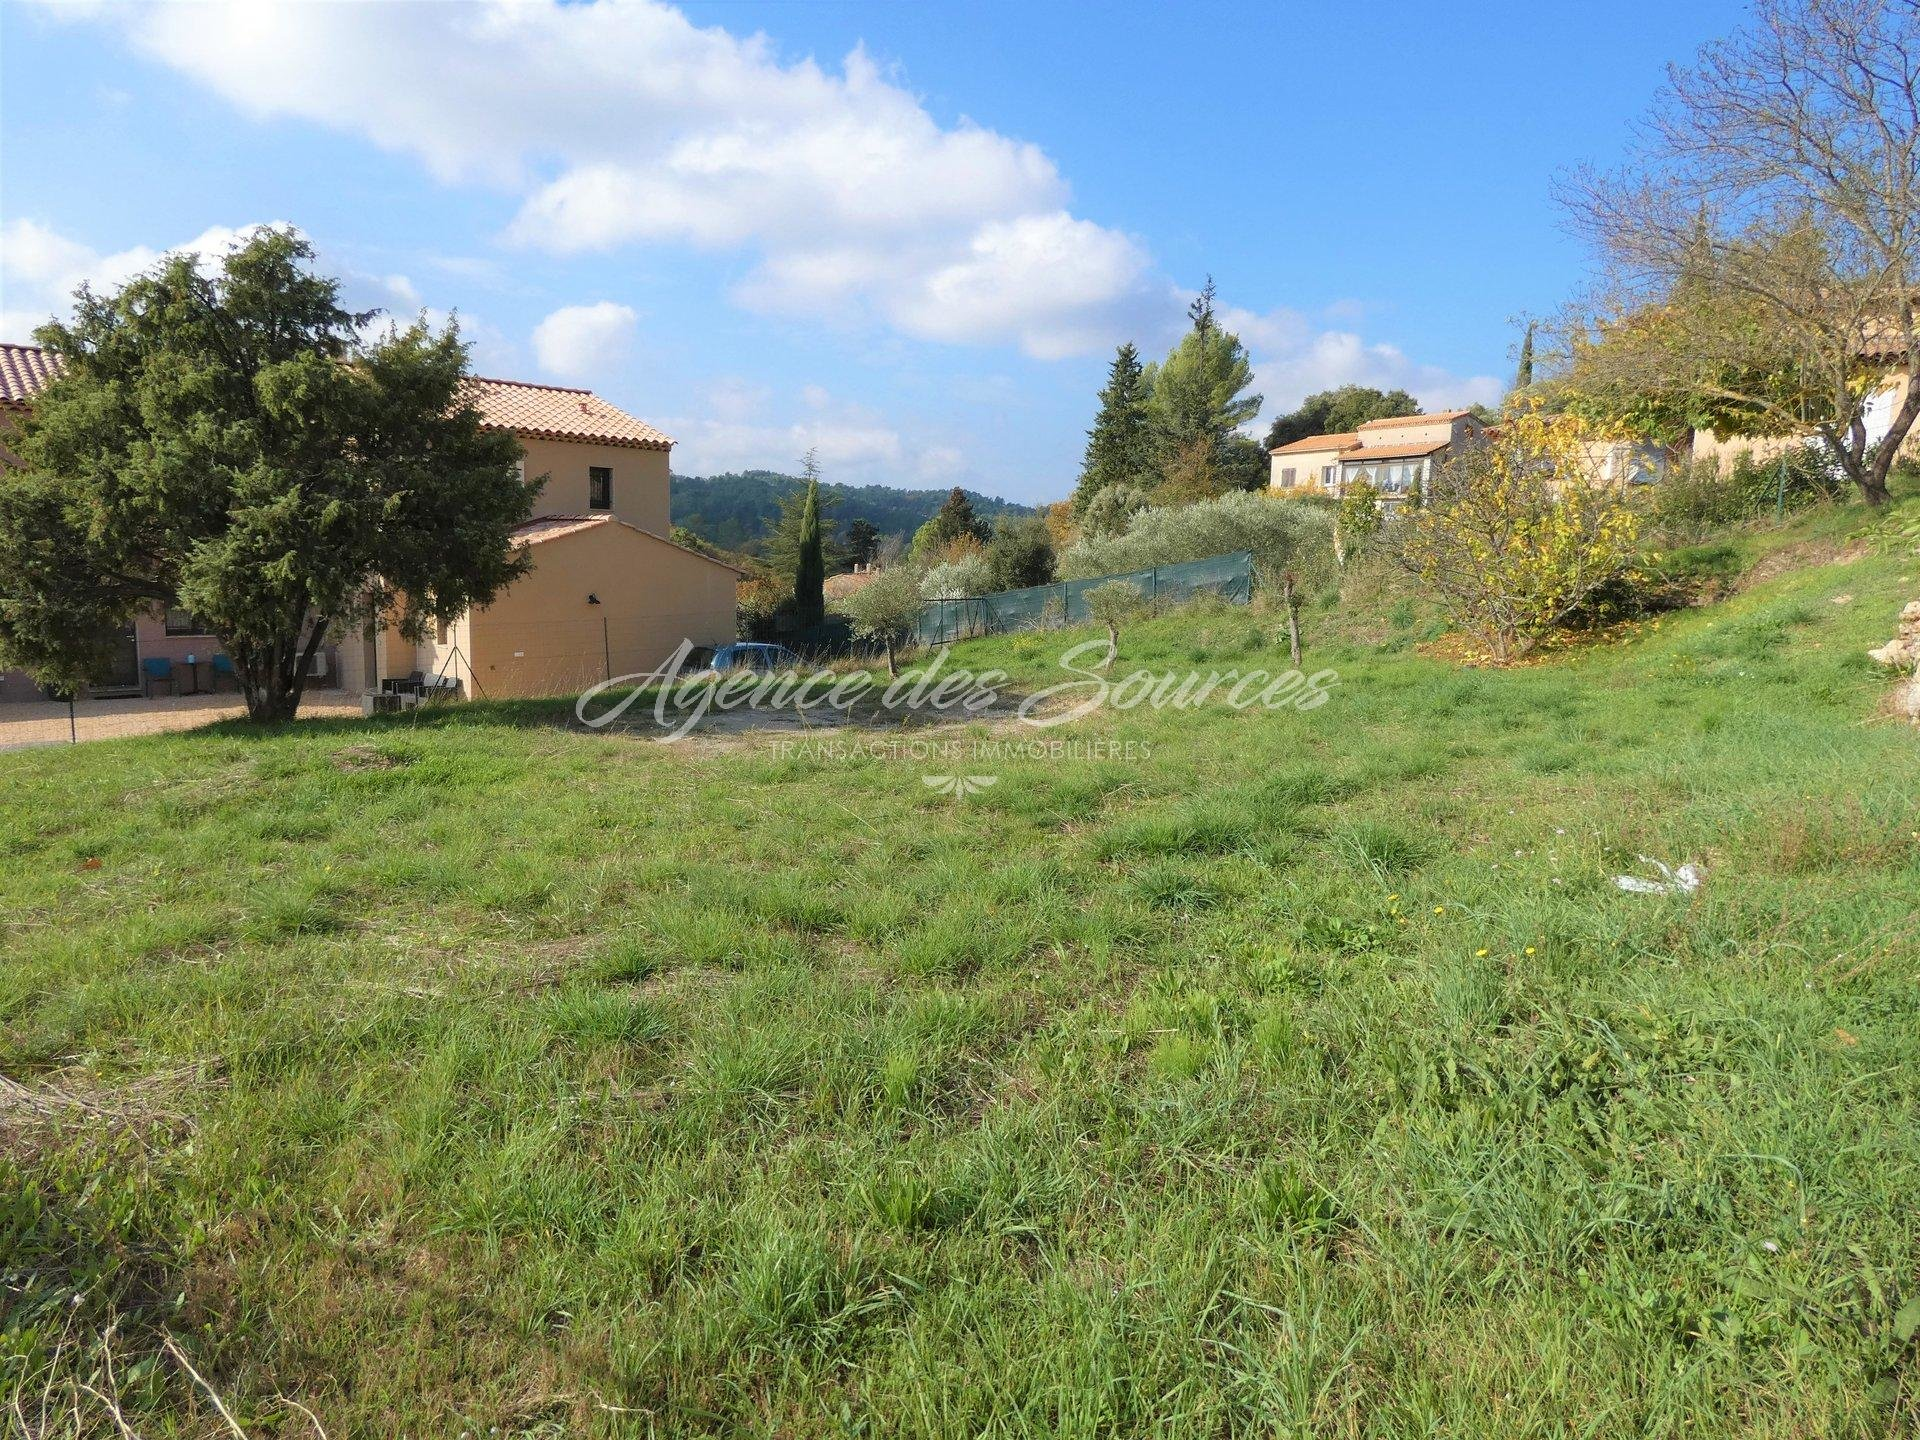 Sale Building land - Varages